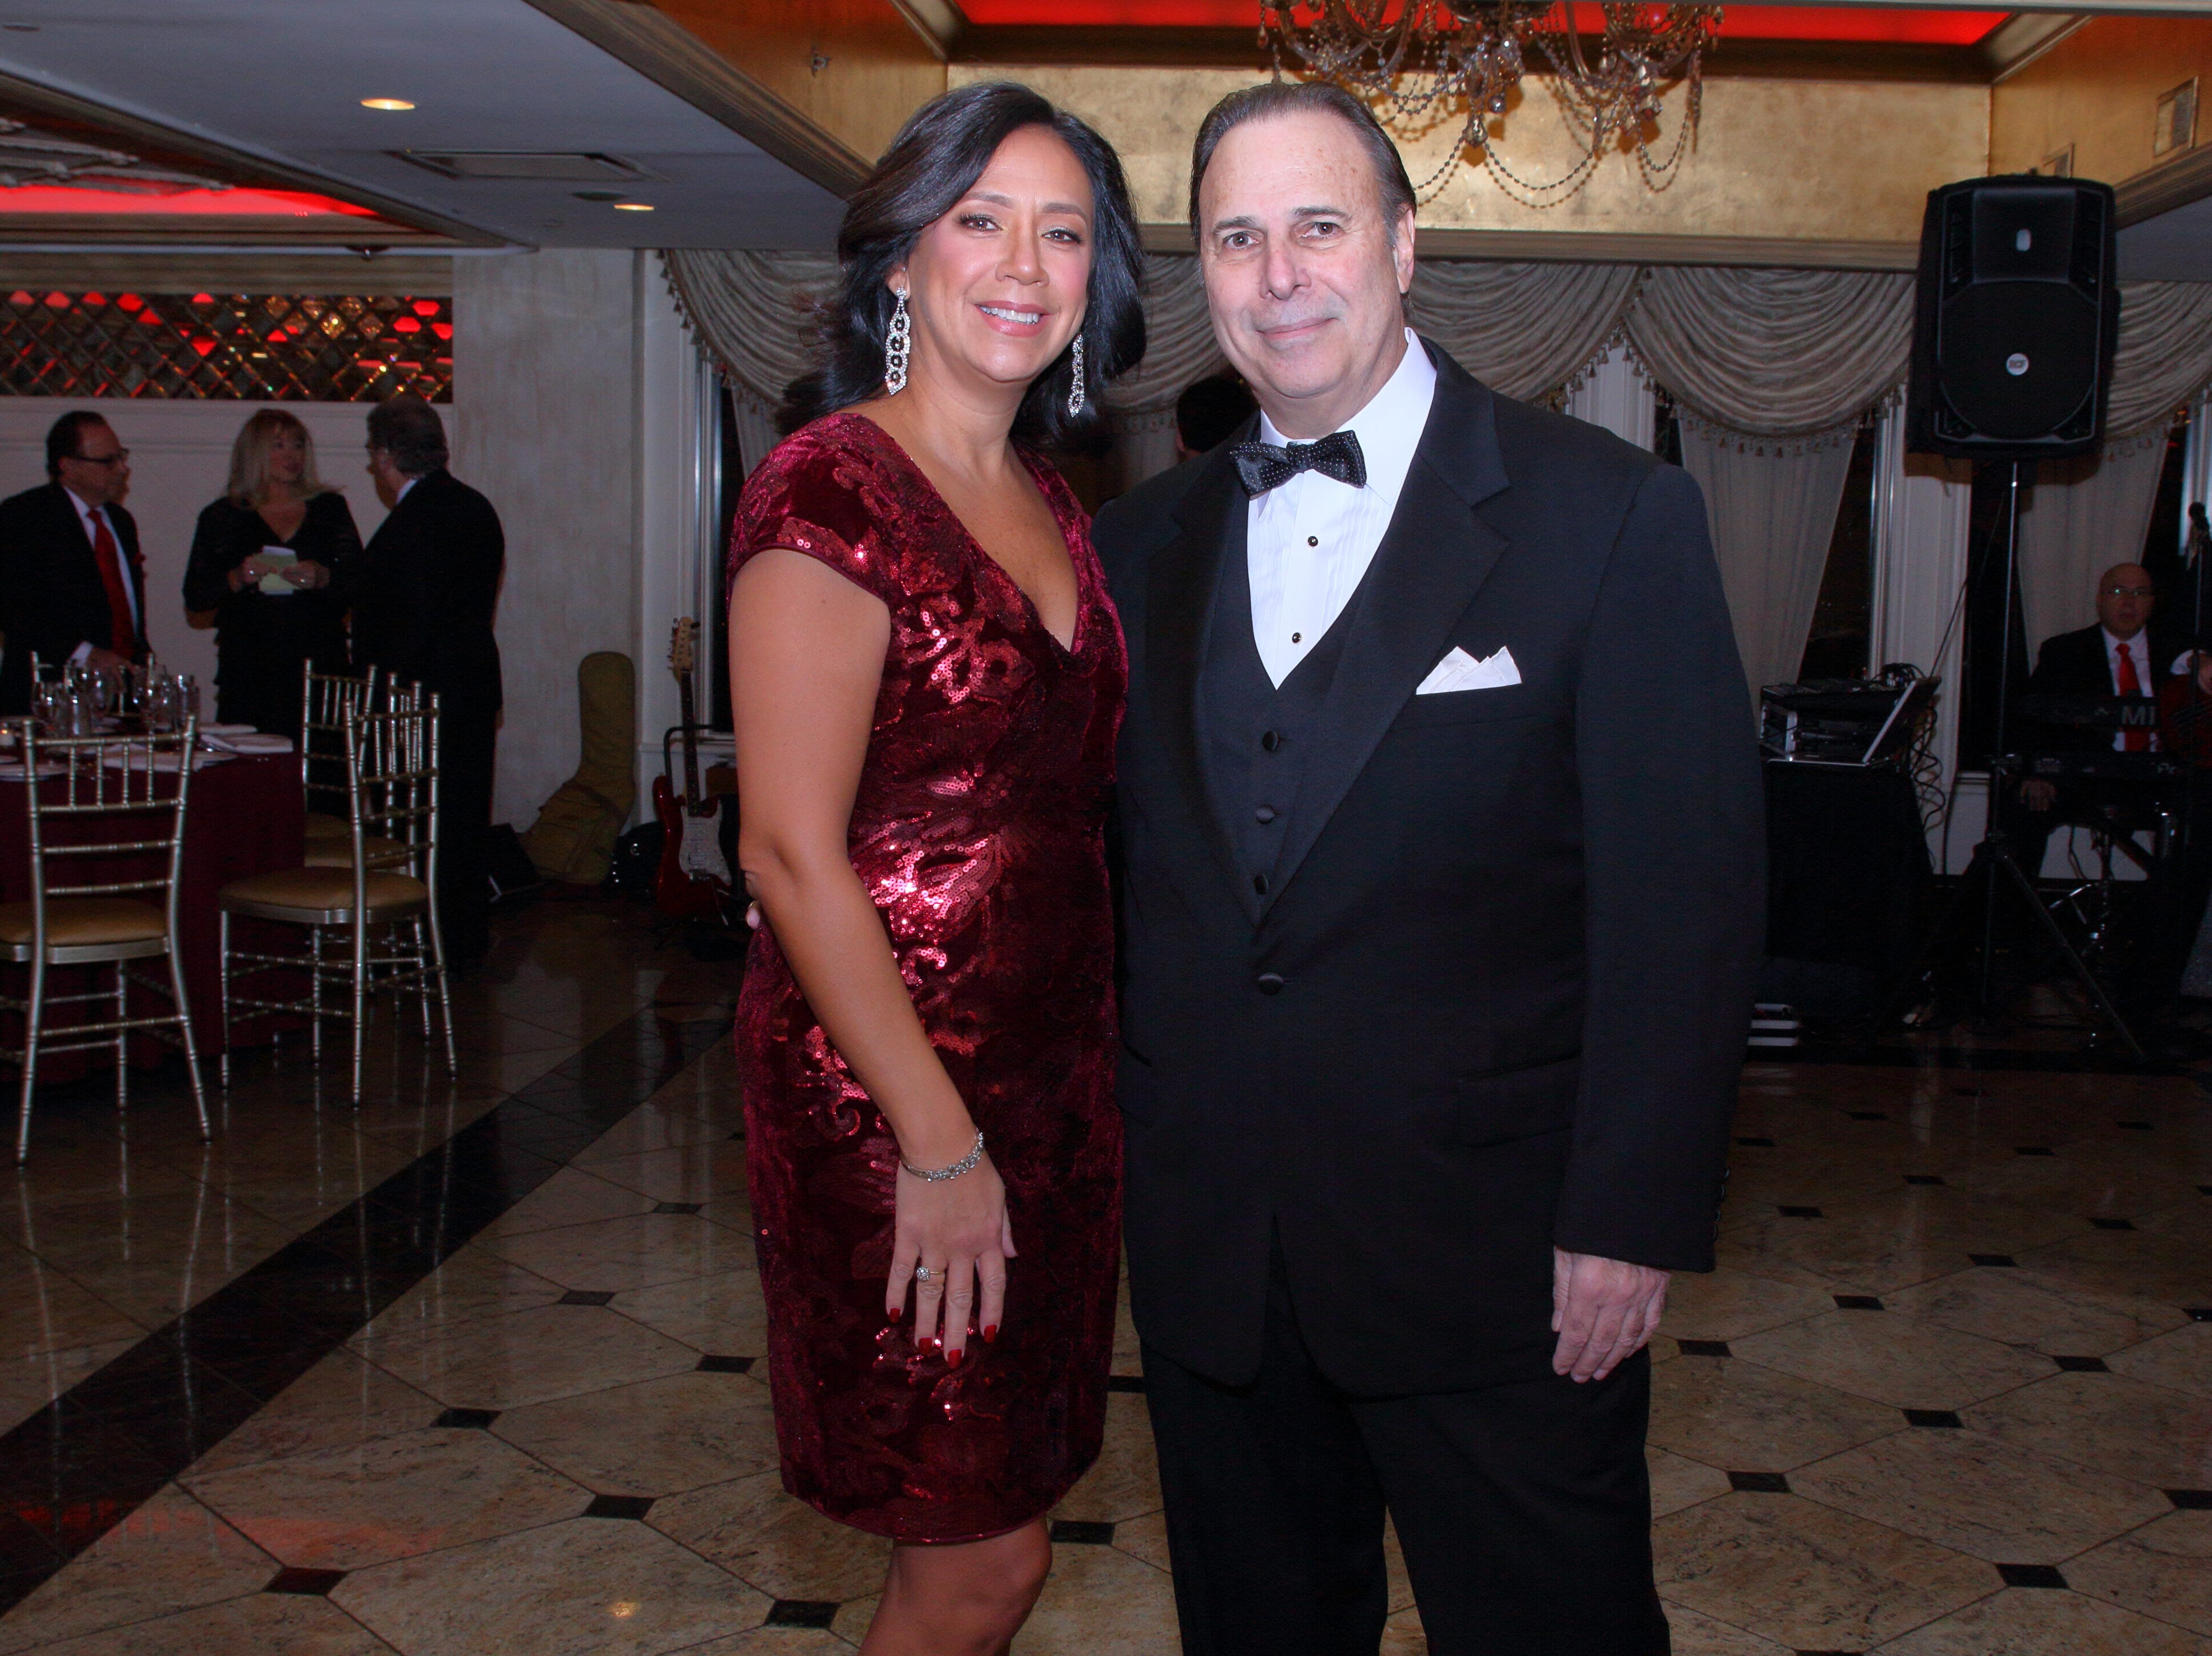 The Saddle River Valley Club held its annual Holiday Gala celebration at Seasons in Washington Township. 11/30/2018